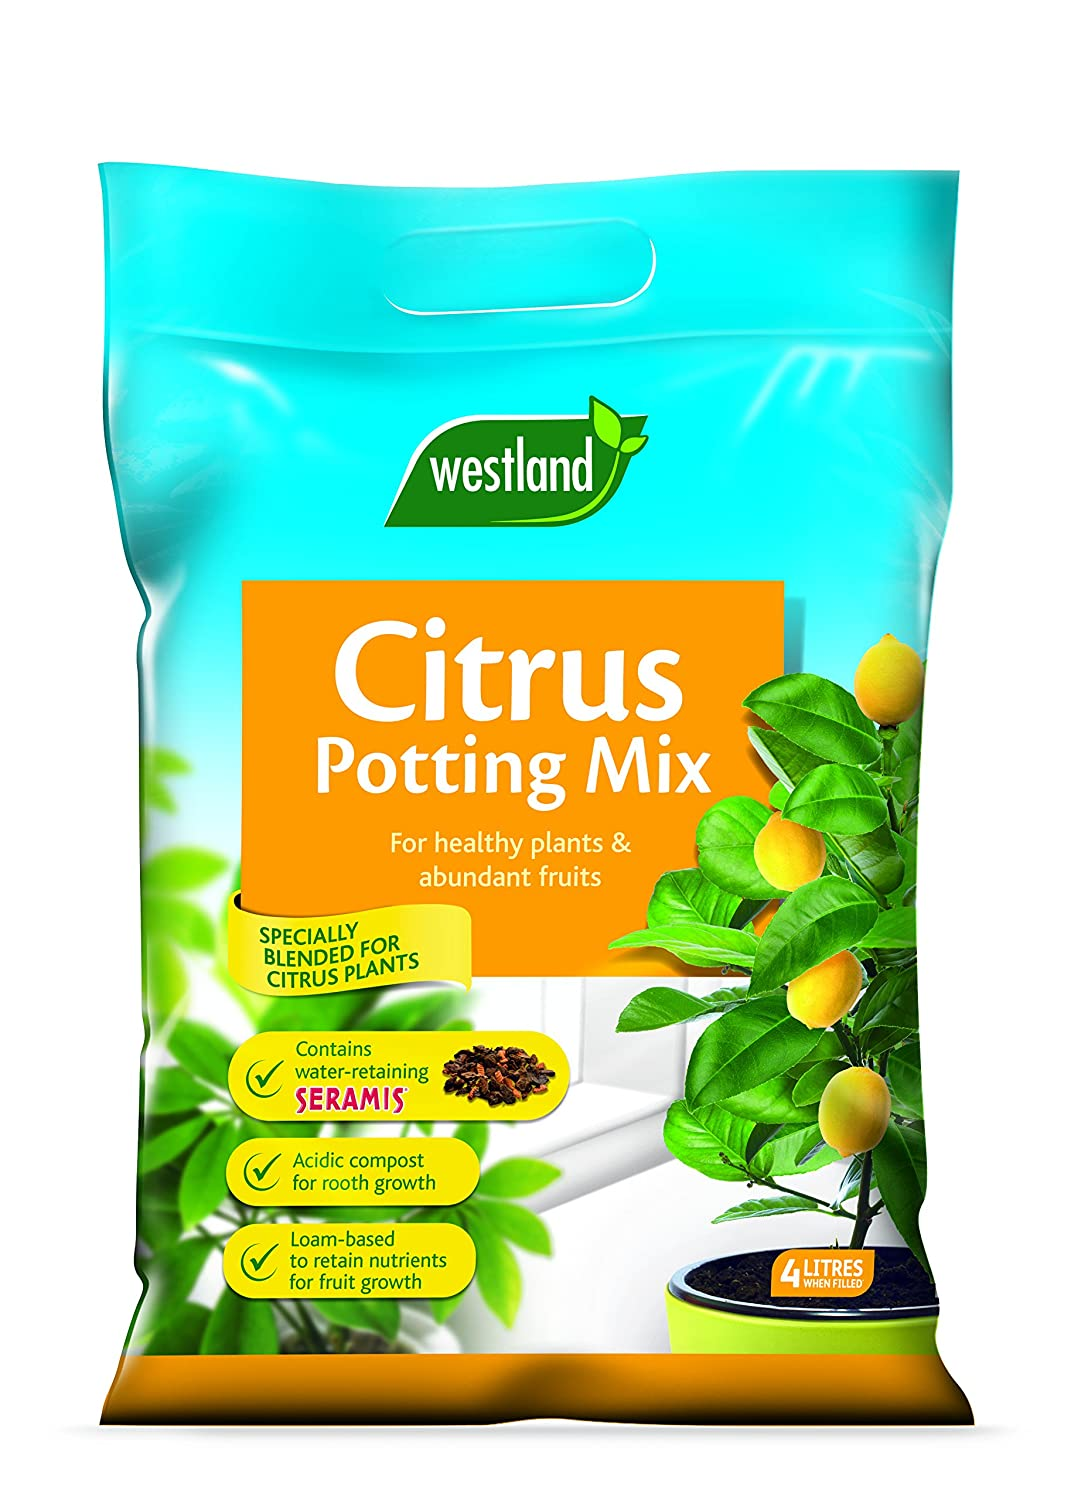 Westland Citrus Potting Compost Mix and Enriched with Seramis, 8 L Westland Horticulture 10200036